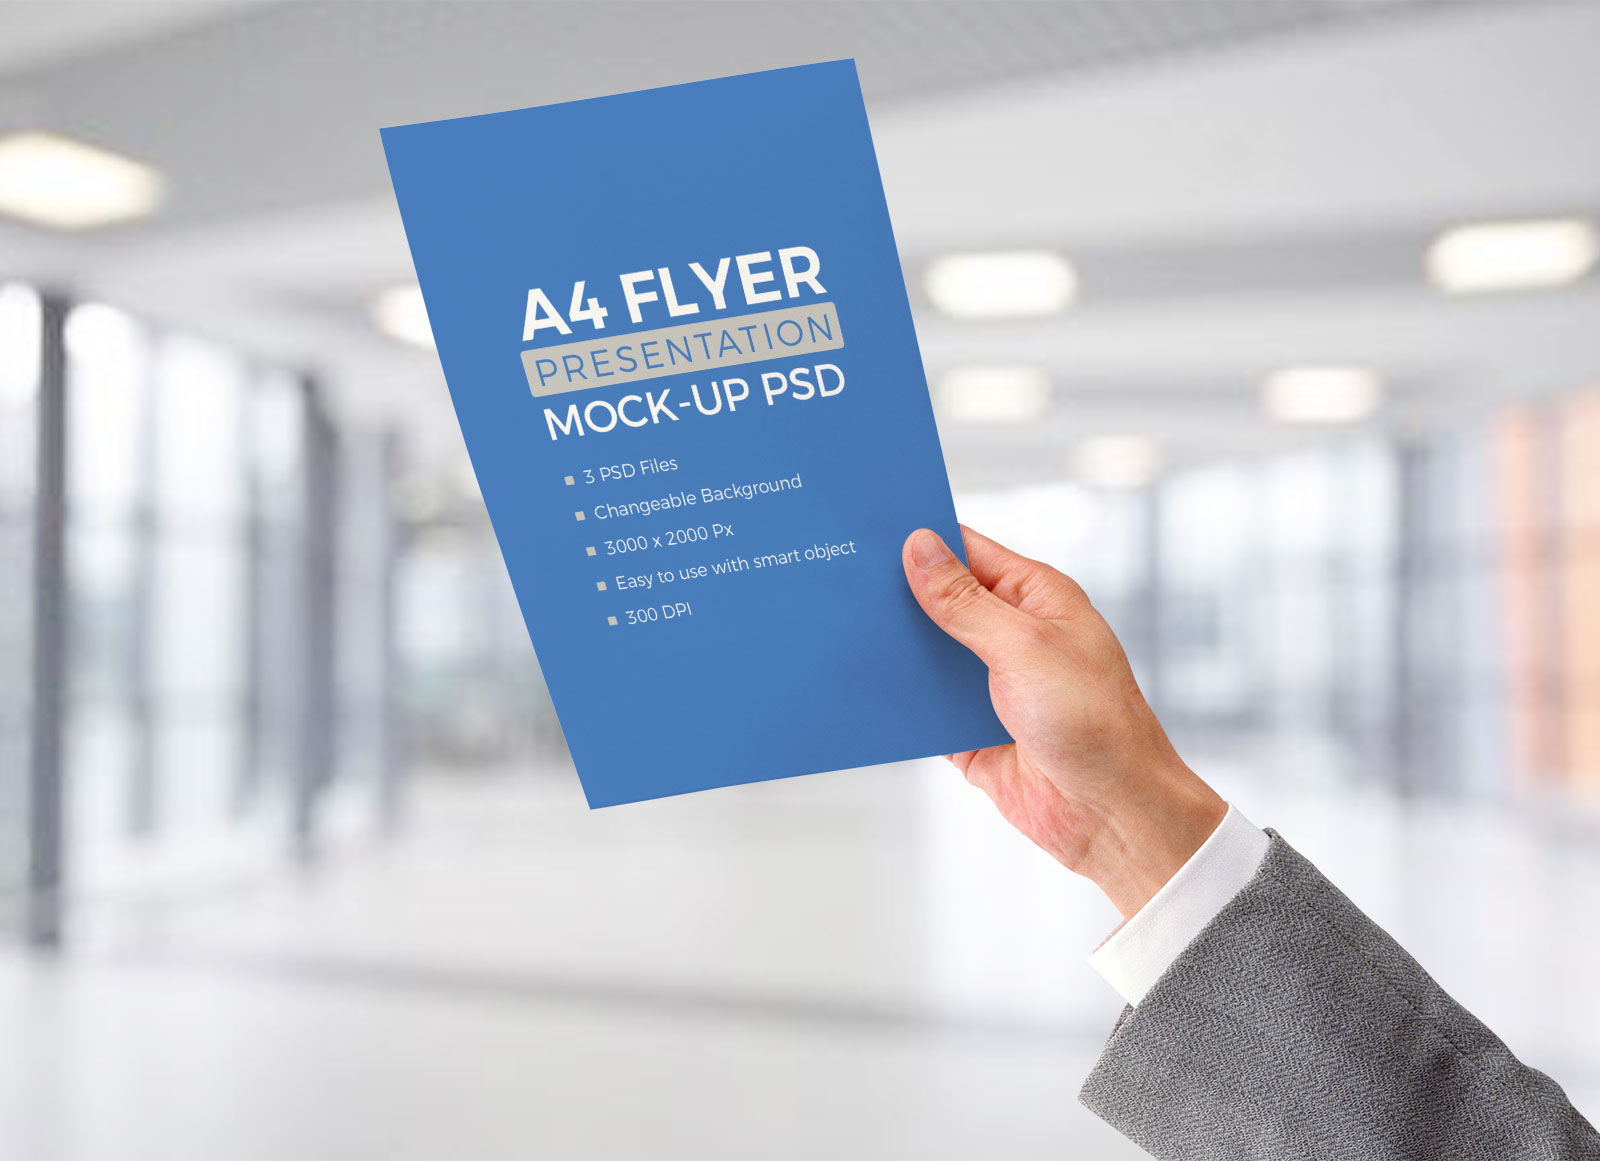 Free-A4-Resume-Flyer-in-Male-Hand-Mockup-PSD-File